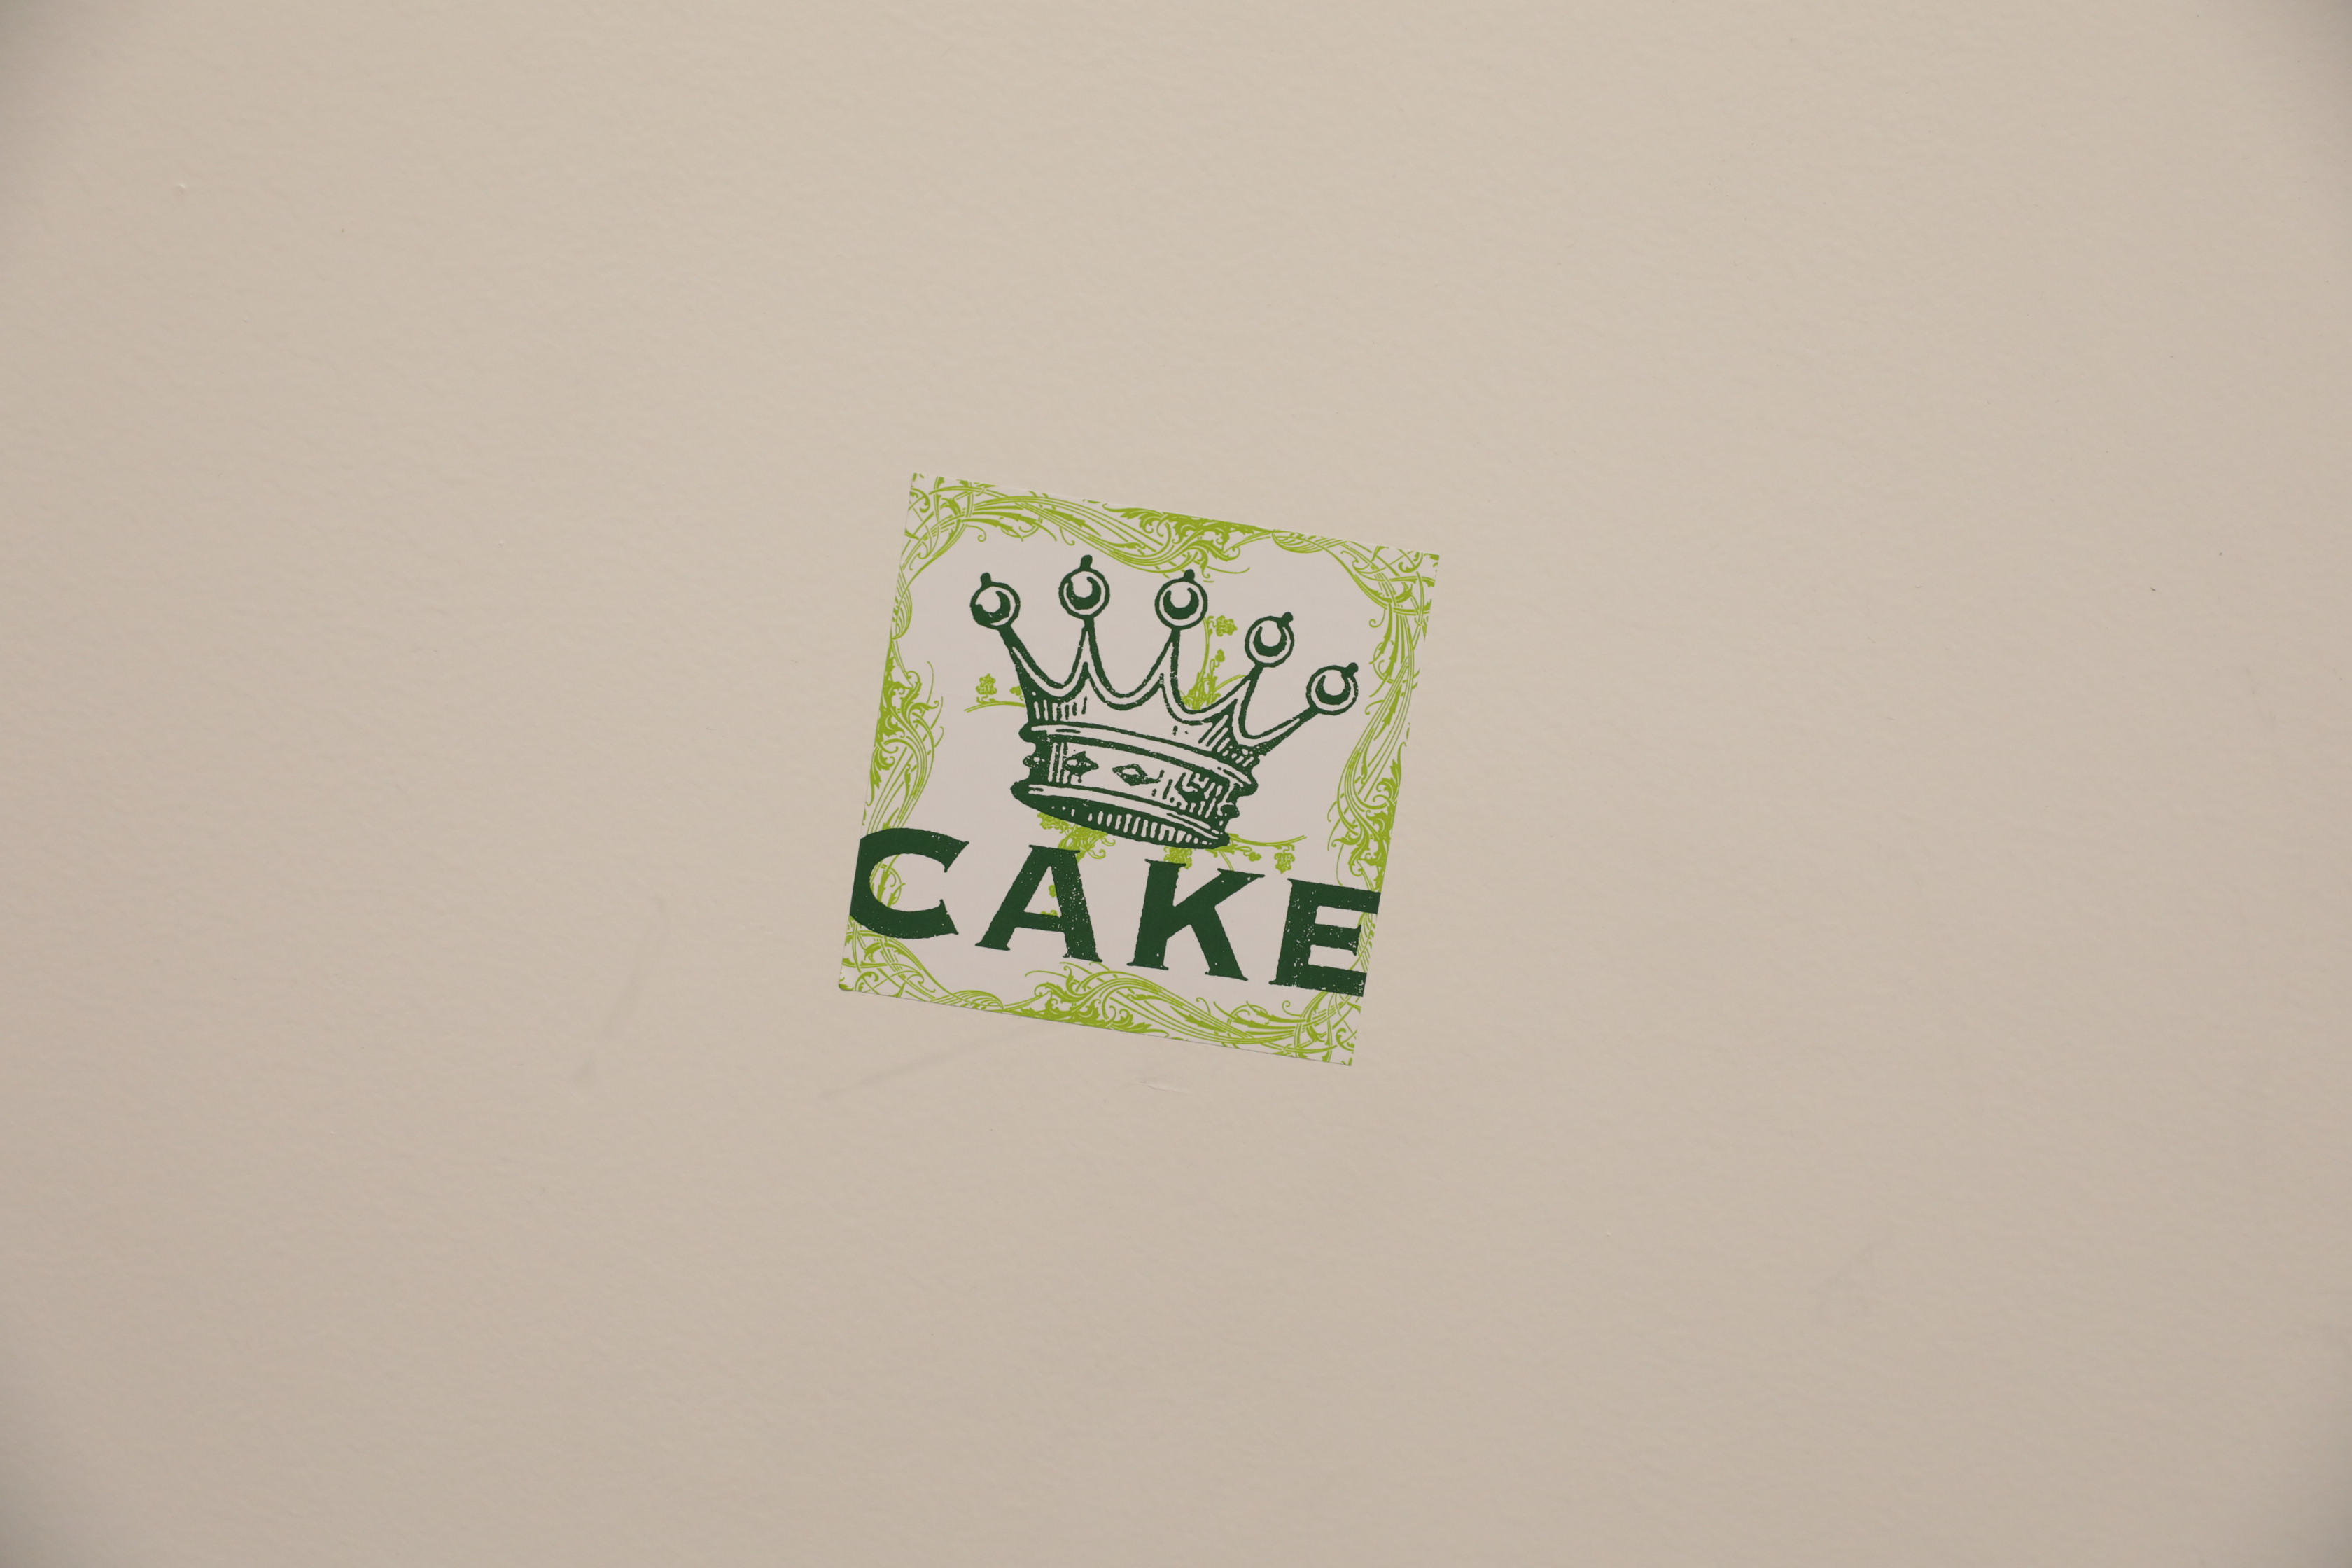 CAKE stamps their seal on the walls backstage at the Eccles Theater. Photo: Lmsorenson.net